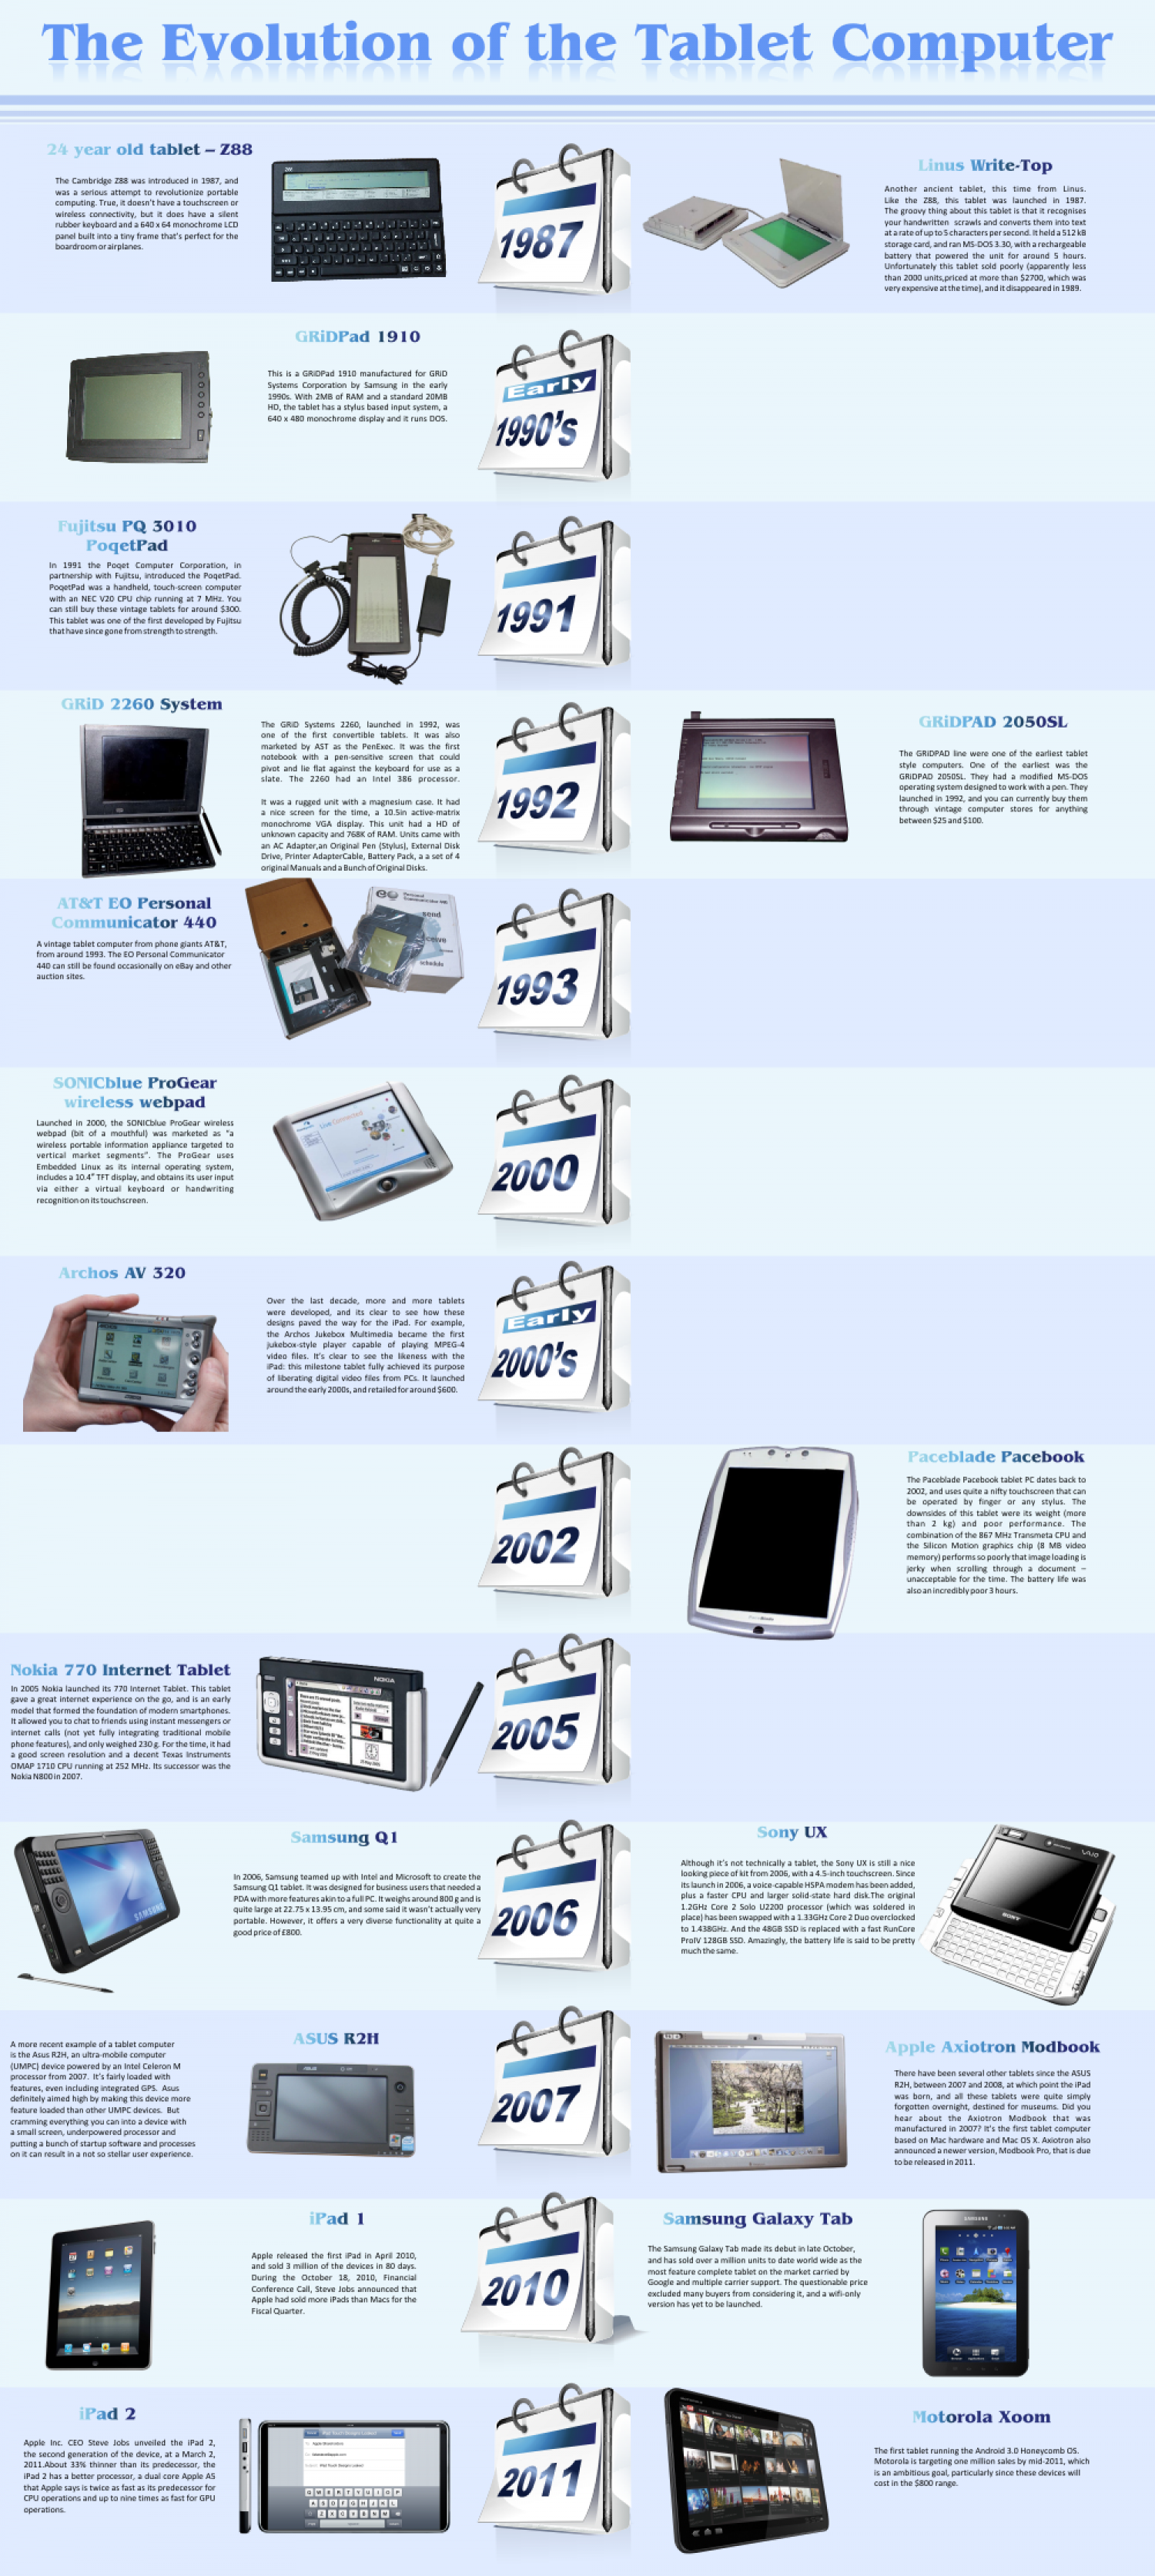 The Evolution of the Tablet Computer Infographic